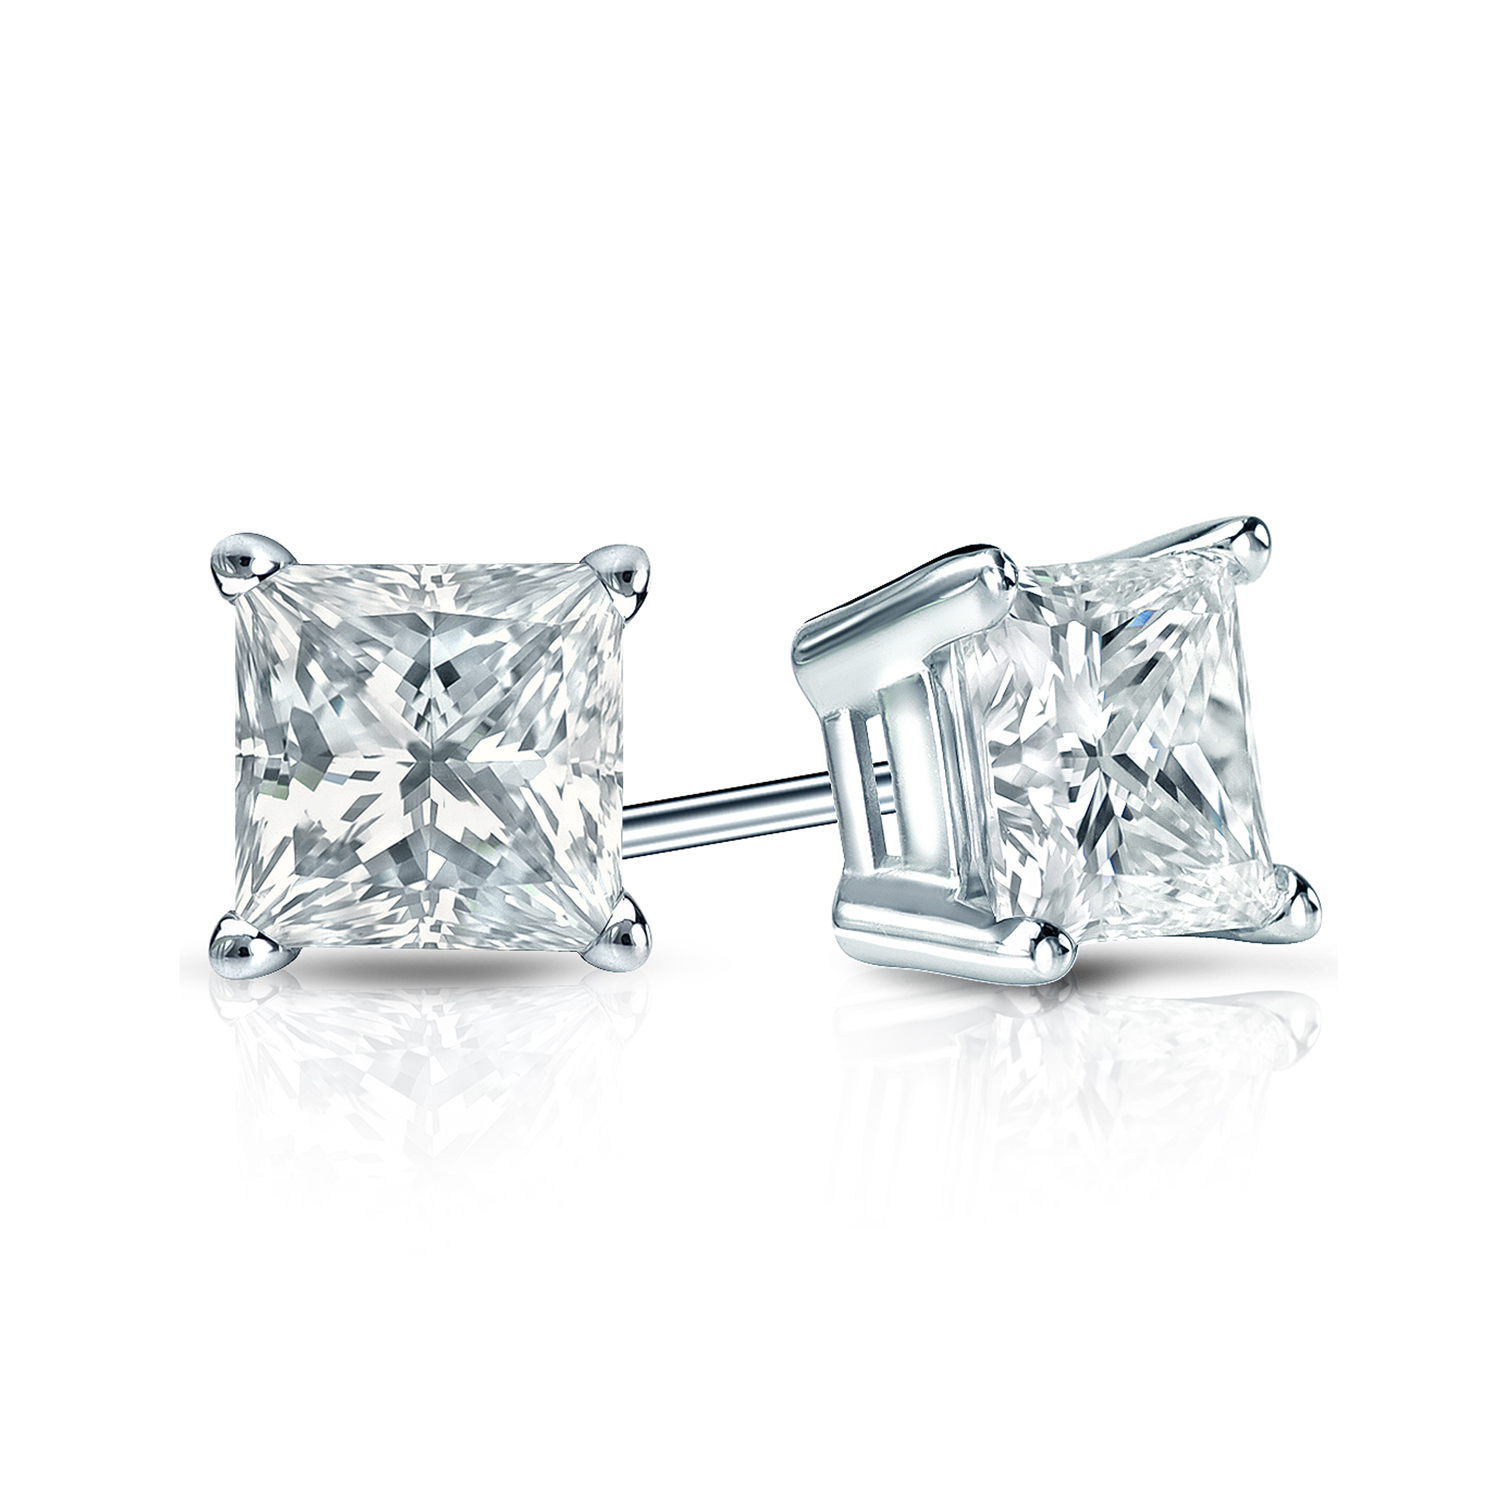 Certified 0.25 cttw Princess Diamond Stud Earrings in 14k White Gold 4-Prong Basket (G-H, VS)